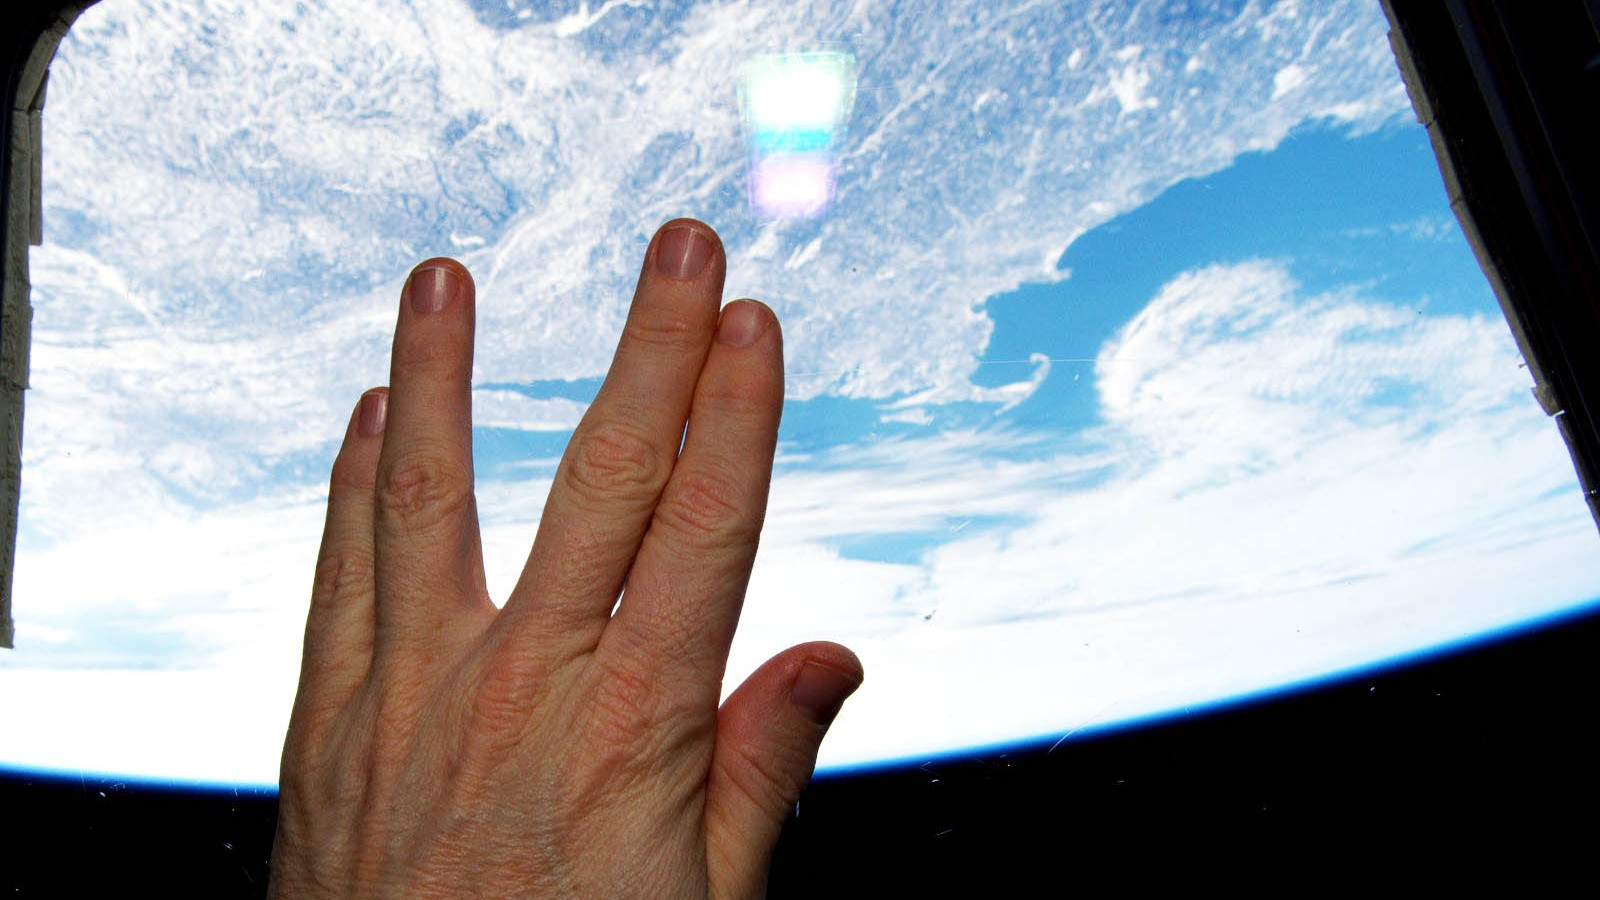 Astronaut_Salutes_Nimoy_From_Orbit